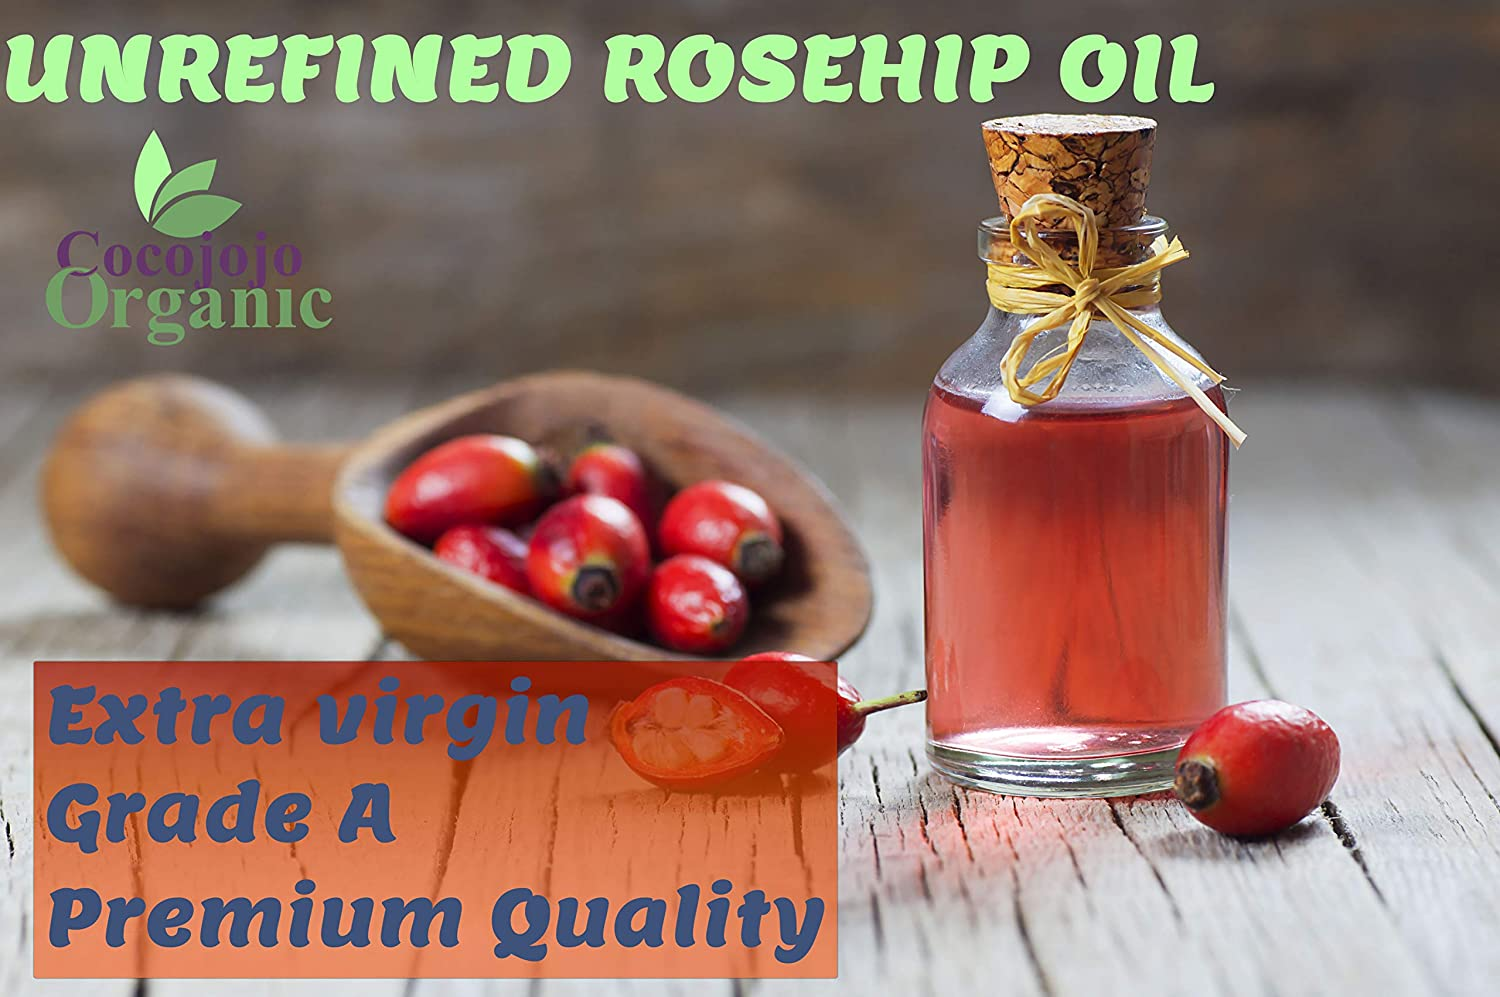 Rosehip Oil 16 oz 100% Pure Natural Cold Pressed Unrefined Extra Virgin Rosehip Seed Oil- Therapeutic Grade A for Hair Skin Body Nail and Beard